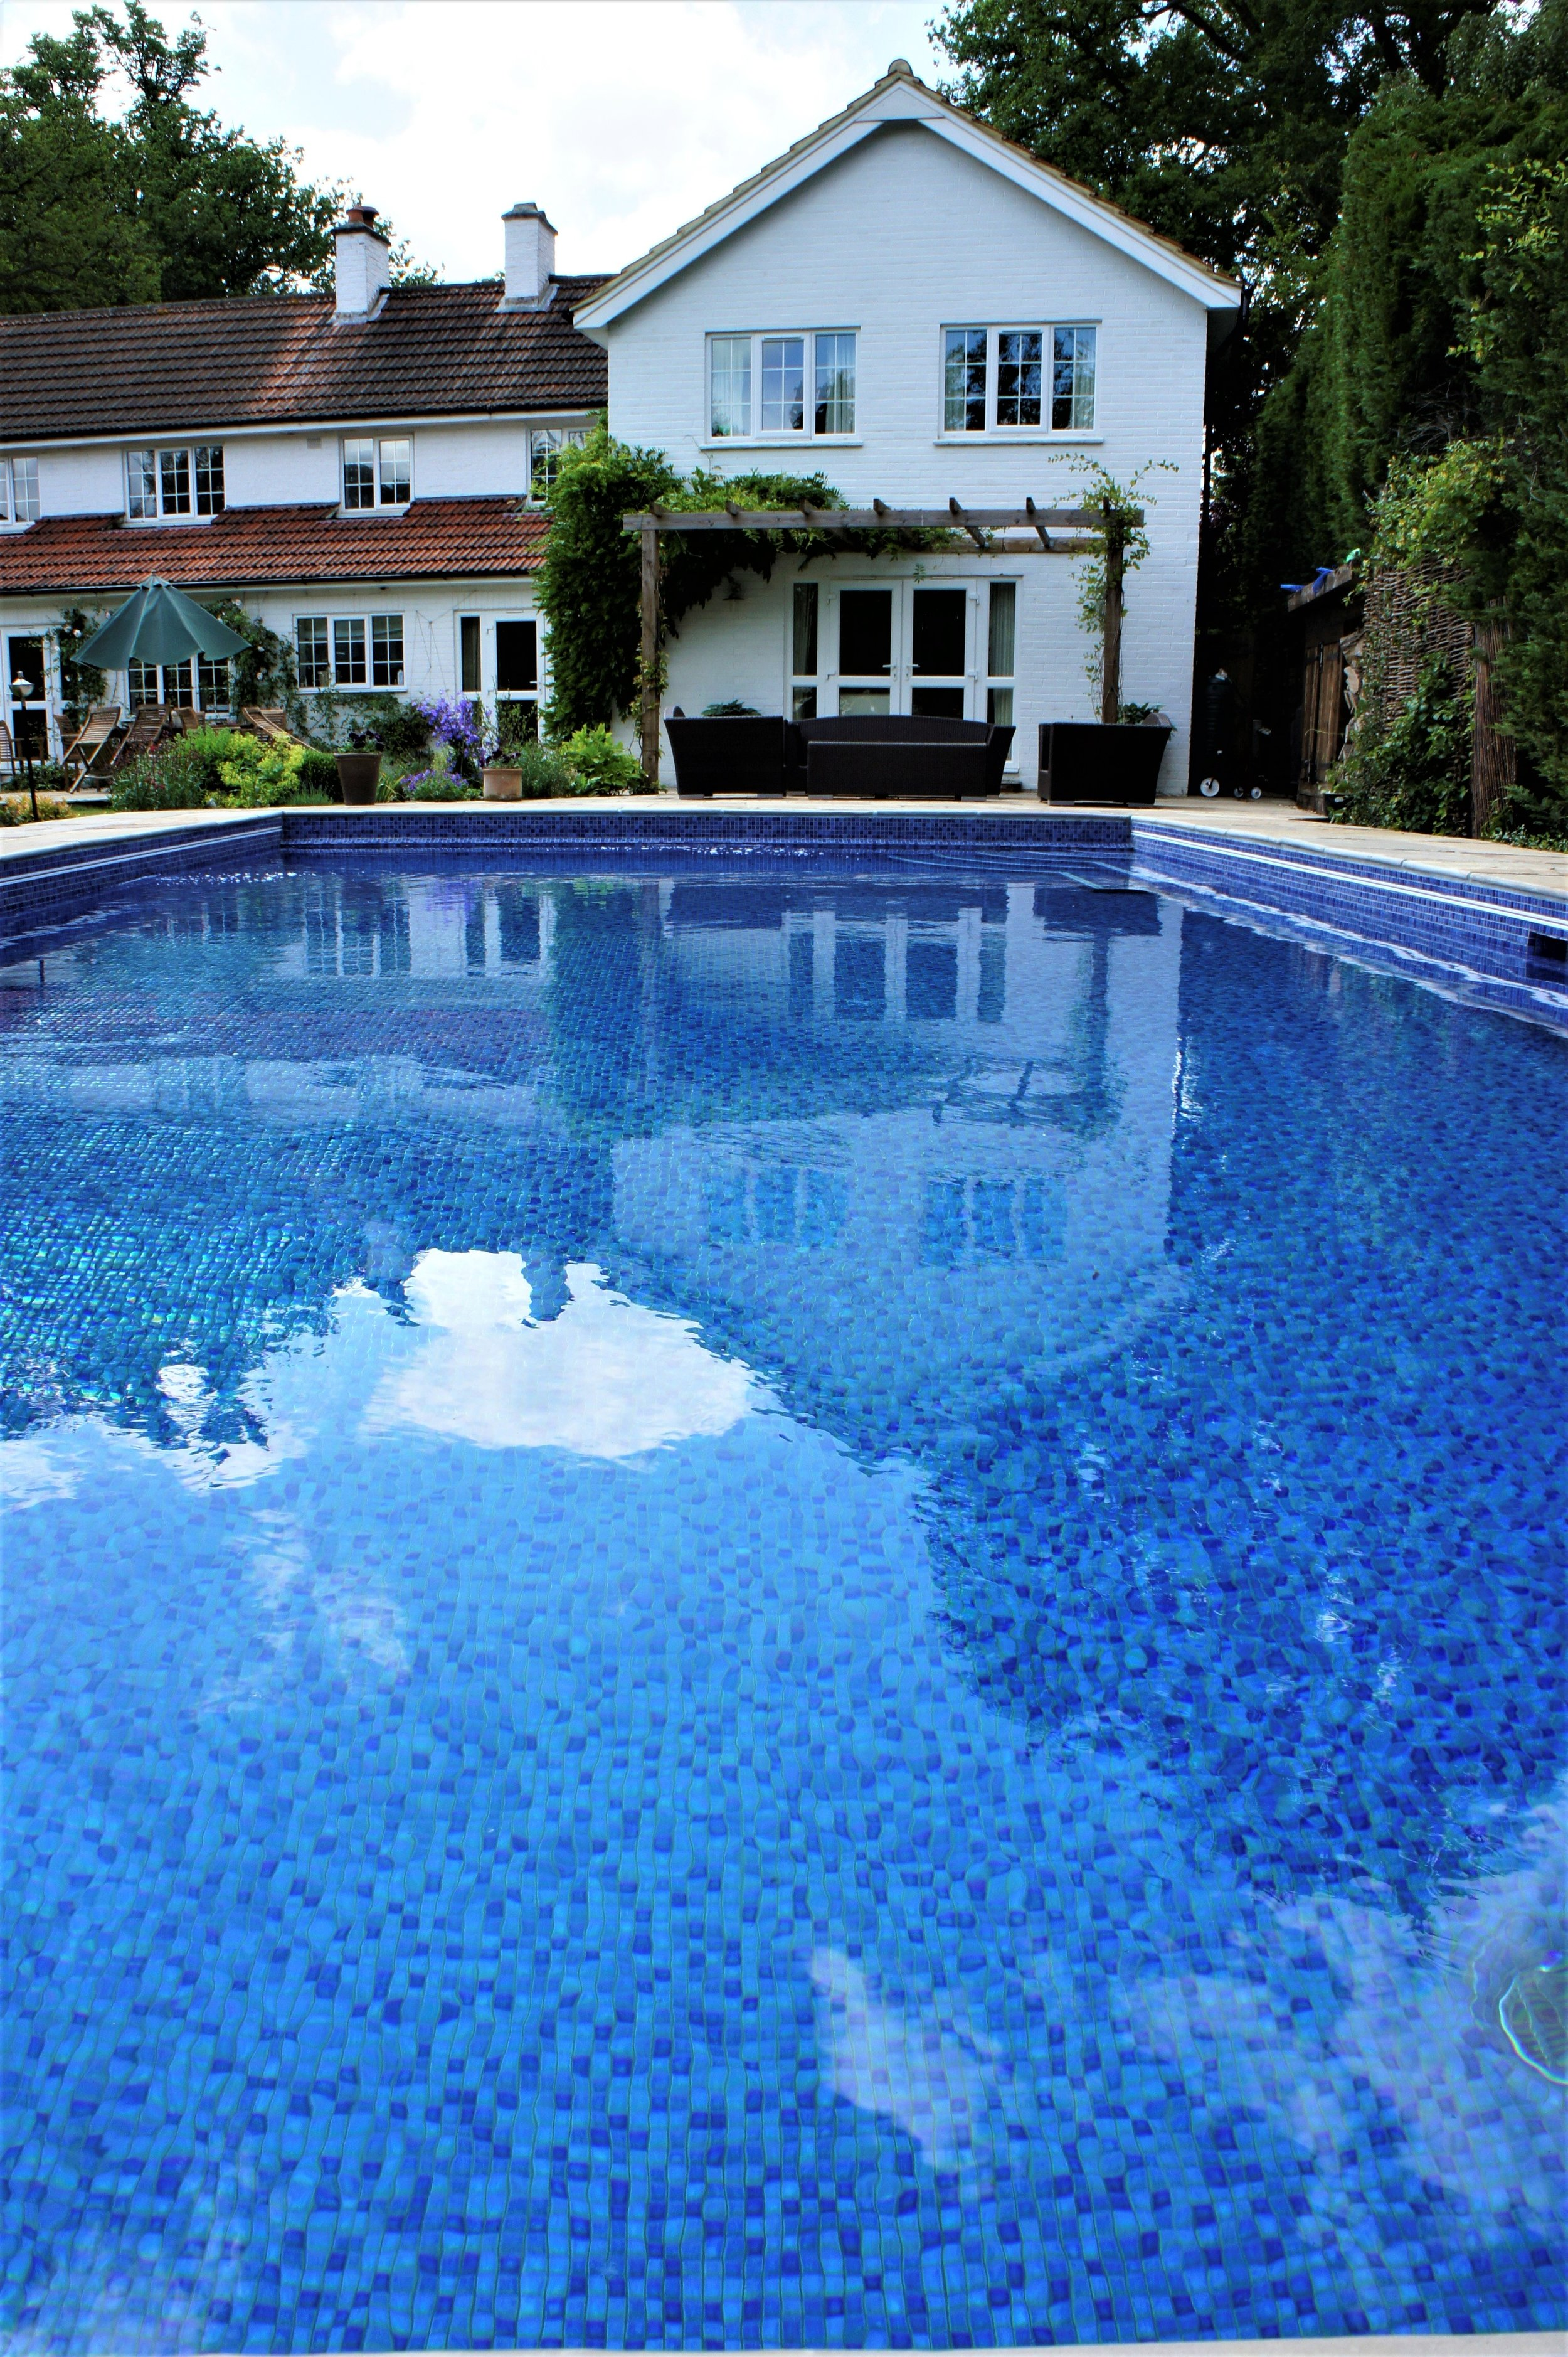 - A stunning traditional skimmer type pool, the deep blue tiles give a sense of depth. A beautiful place to relax & entertain.